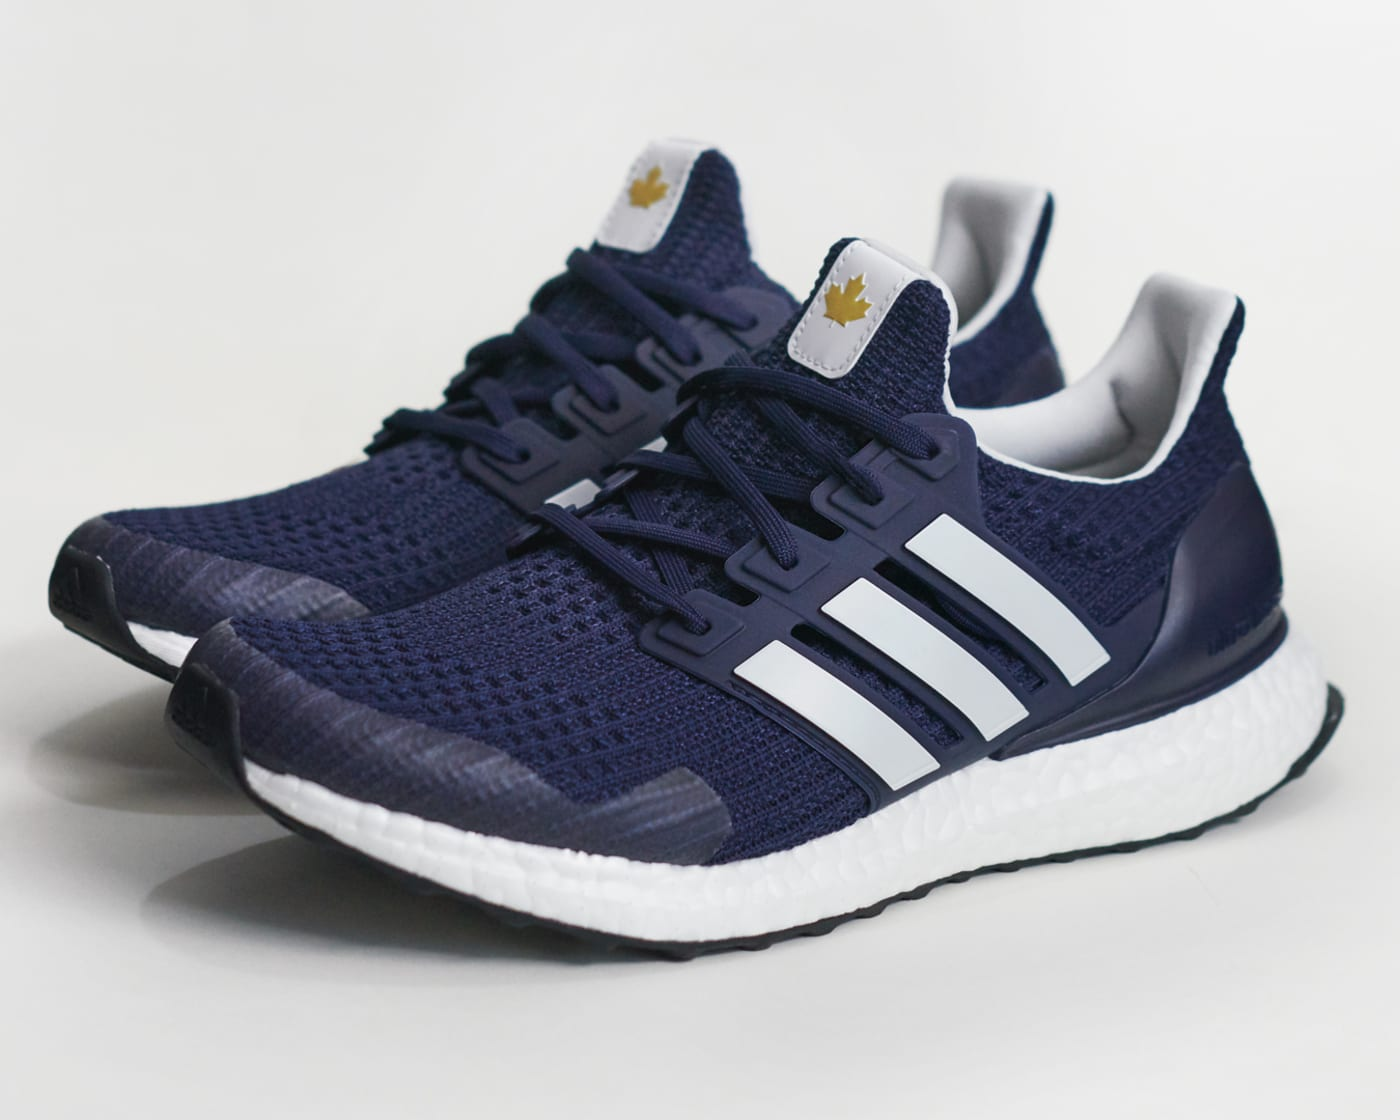 terry fox adidas ultraboost dna limited edition